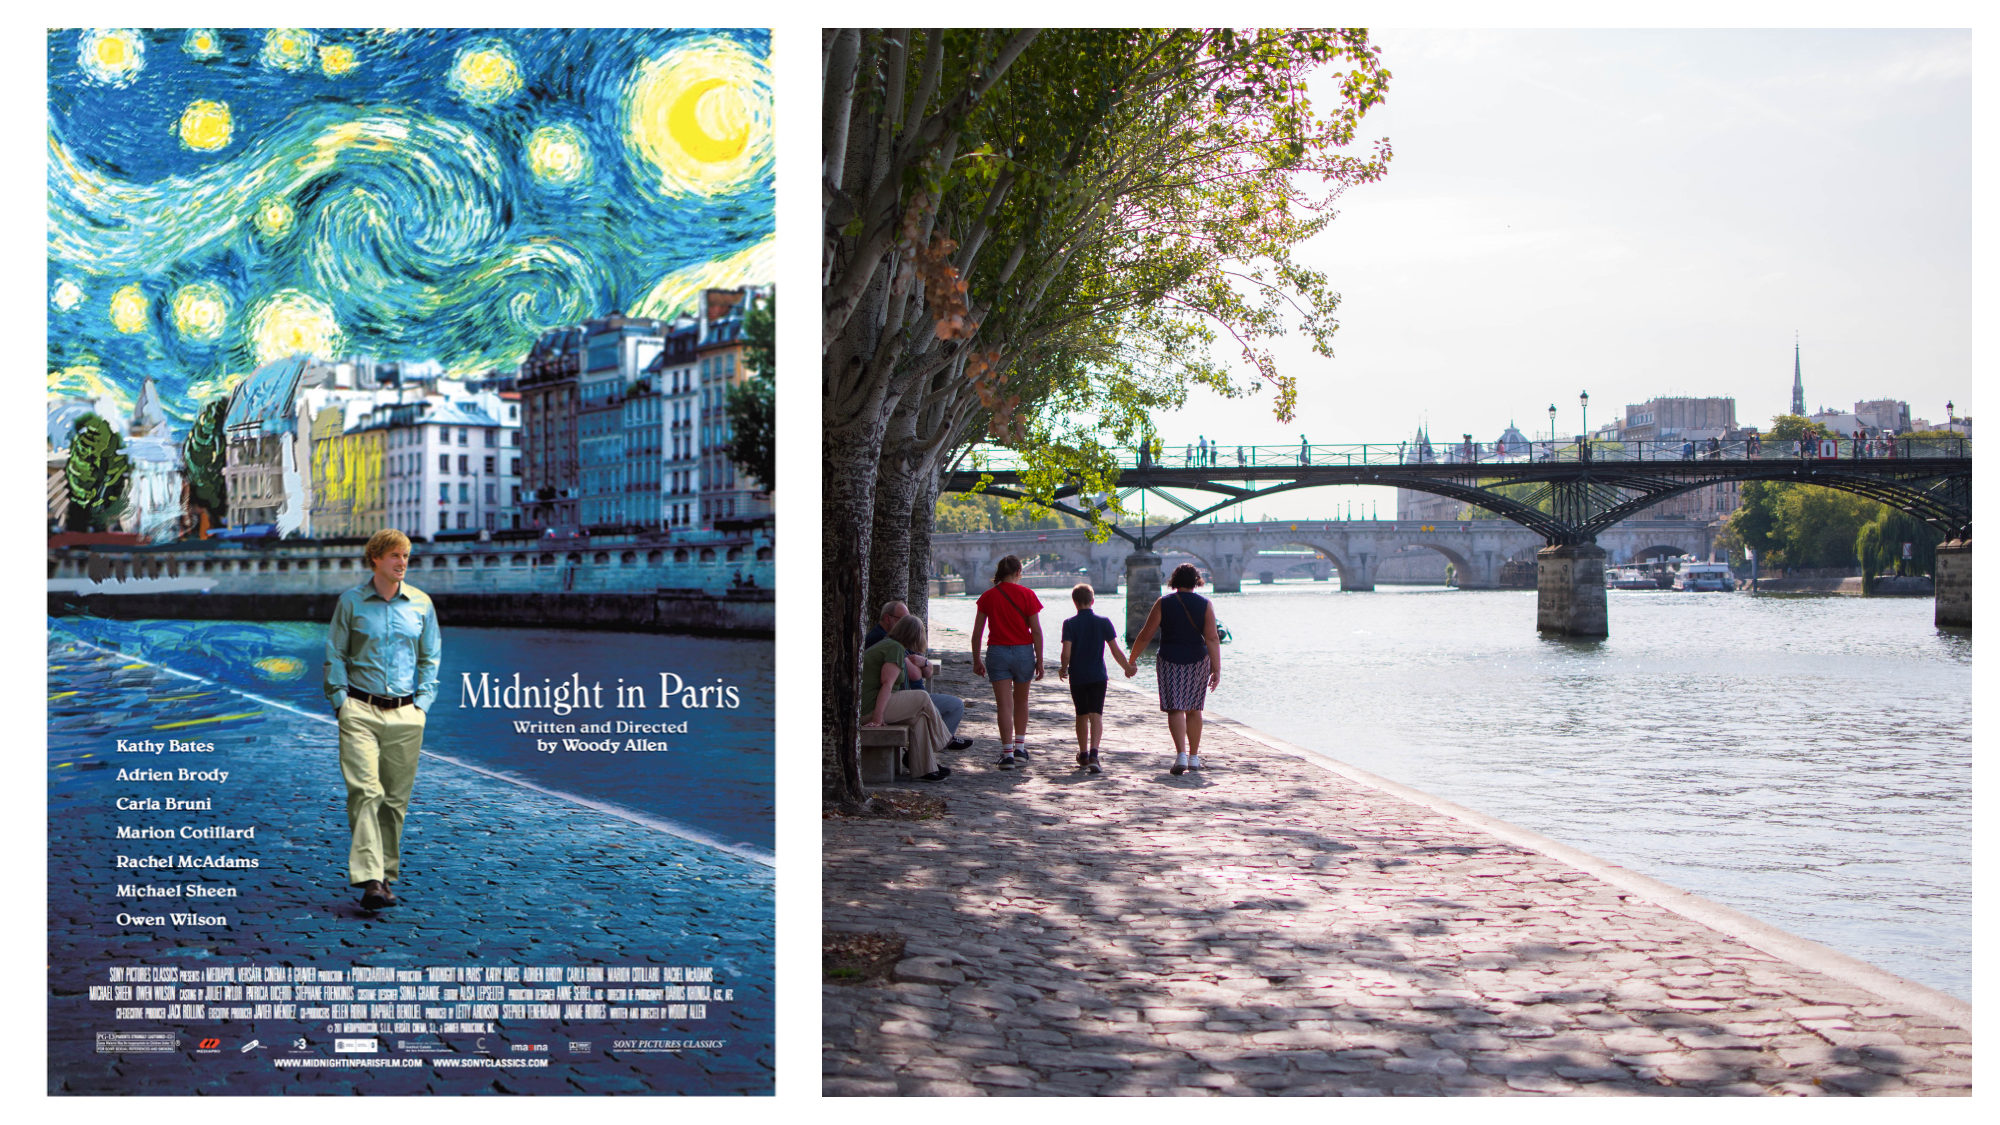 """A poster for the movie """"Midnight in Paris"""" (left). Three people strolling along the cobblestone banks of the River Seine in the sun (right)."""